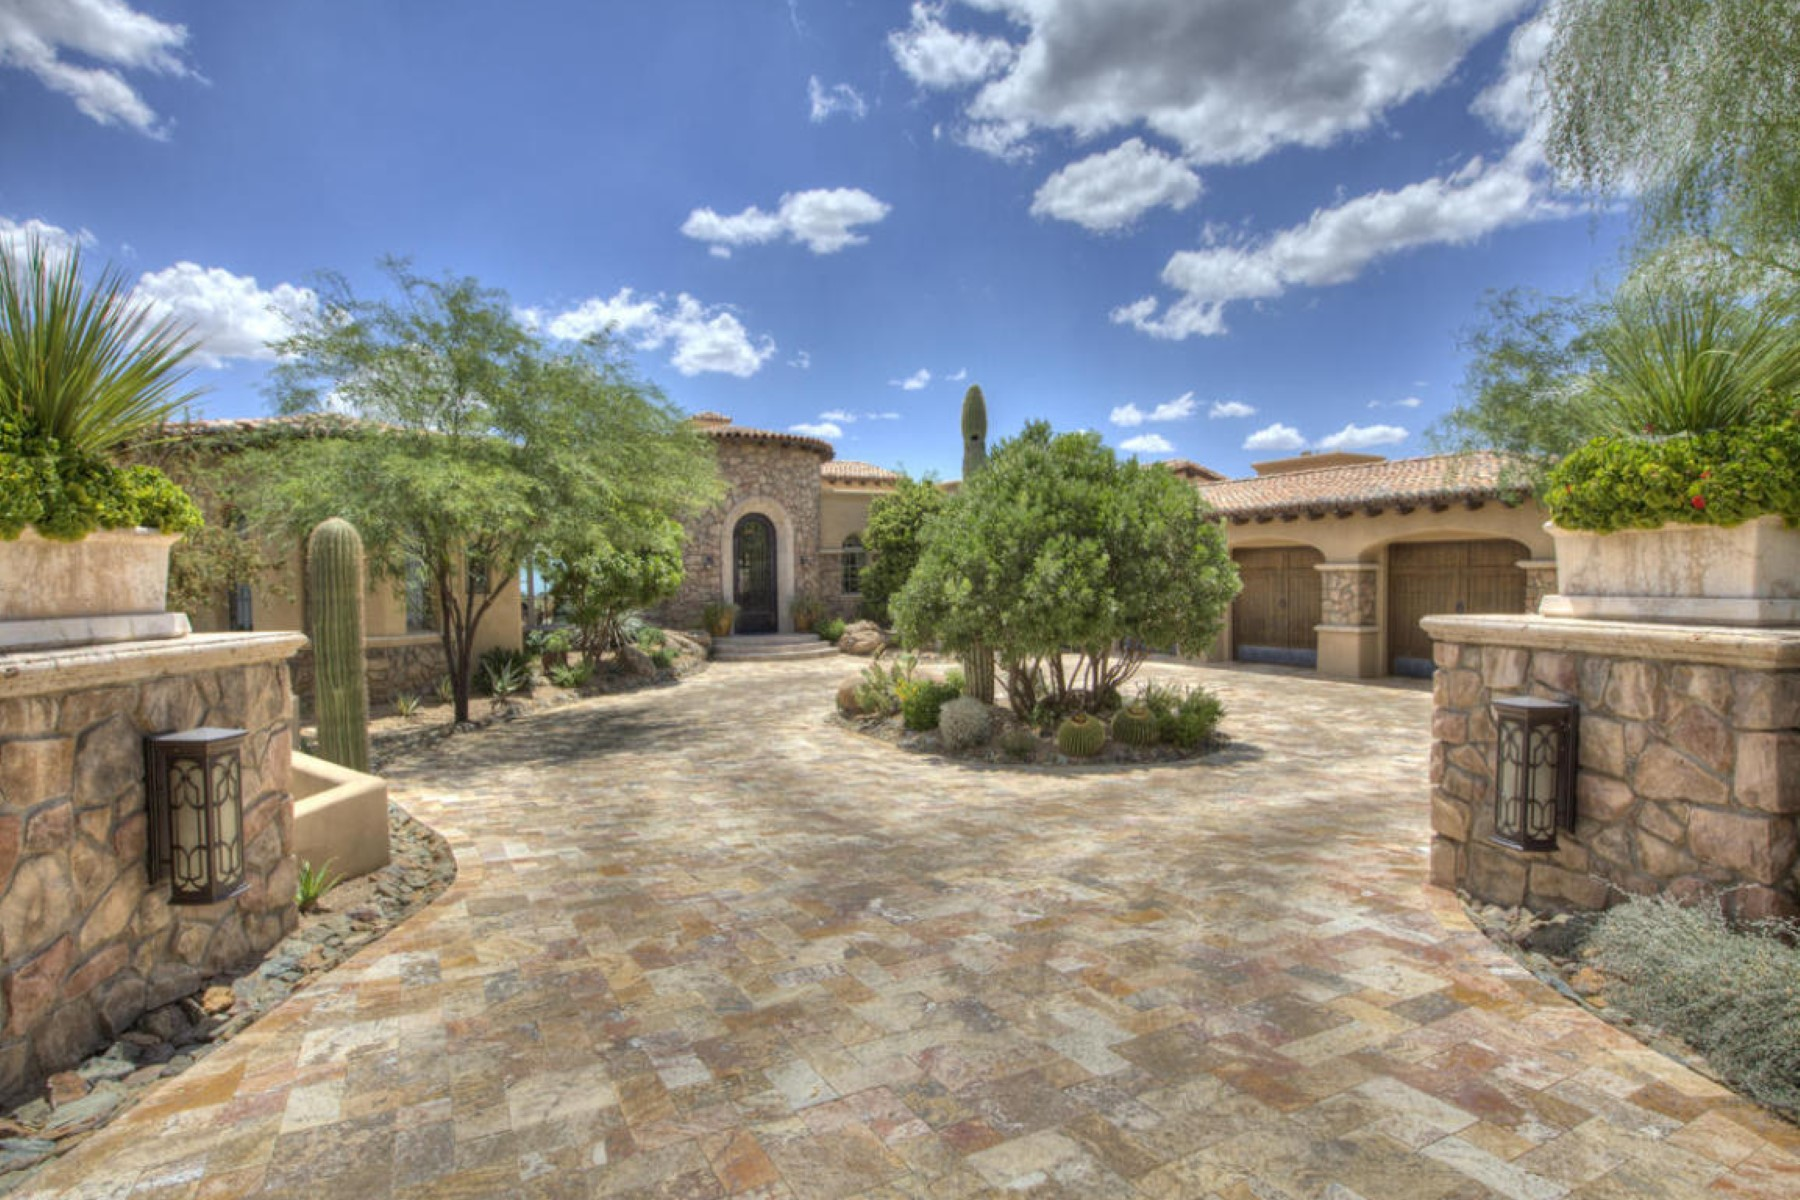 Property For Sale at Elegant Tuscan Design on the 16th Hole of the Apache Golf Course in Desert Mtn